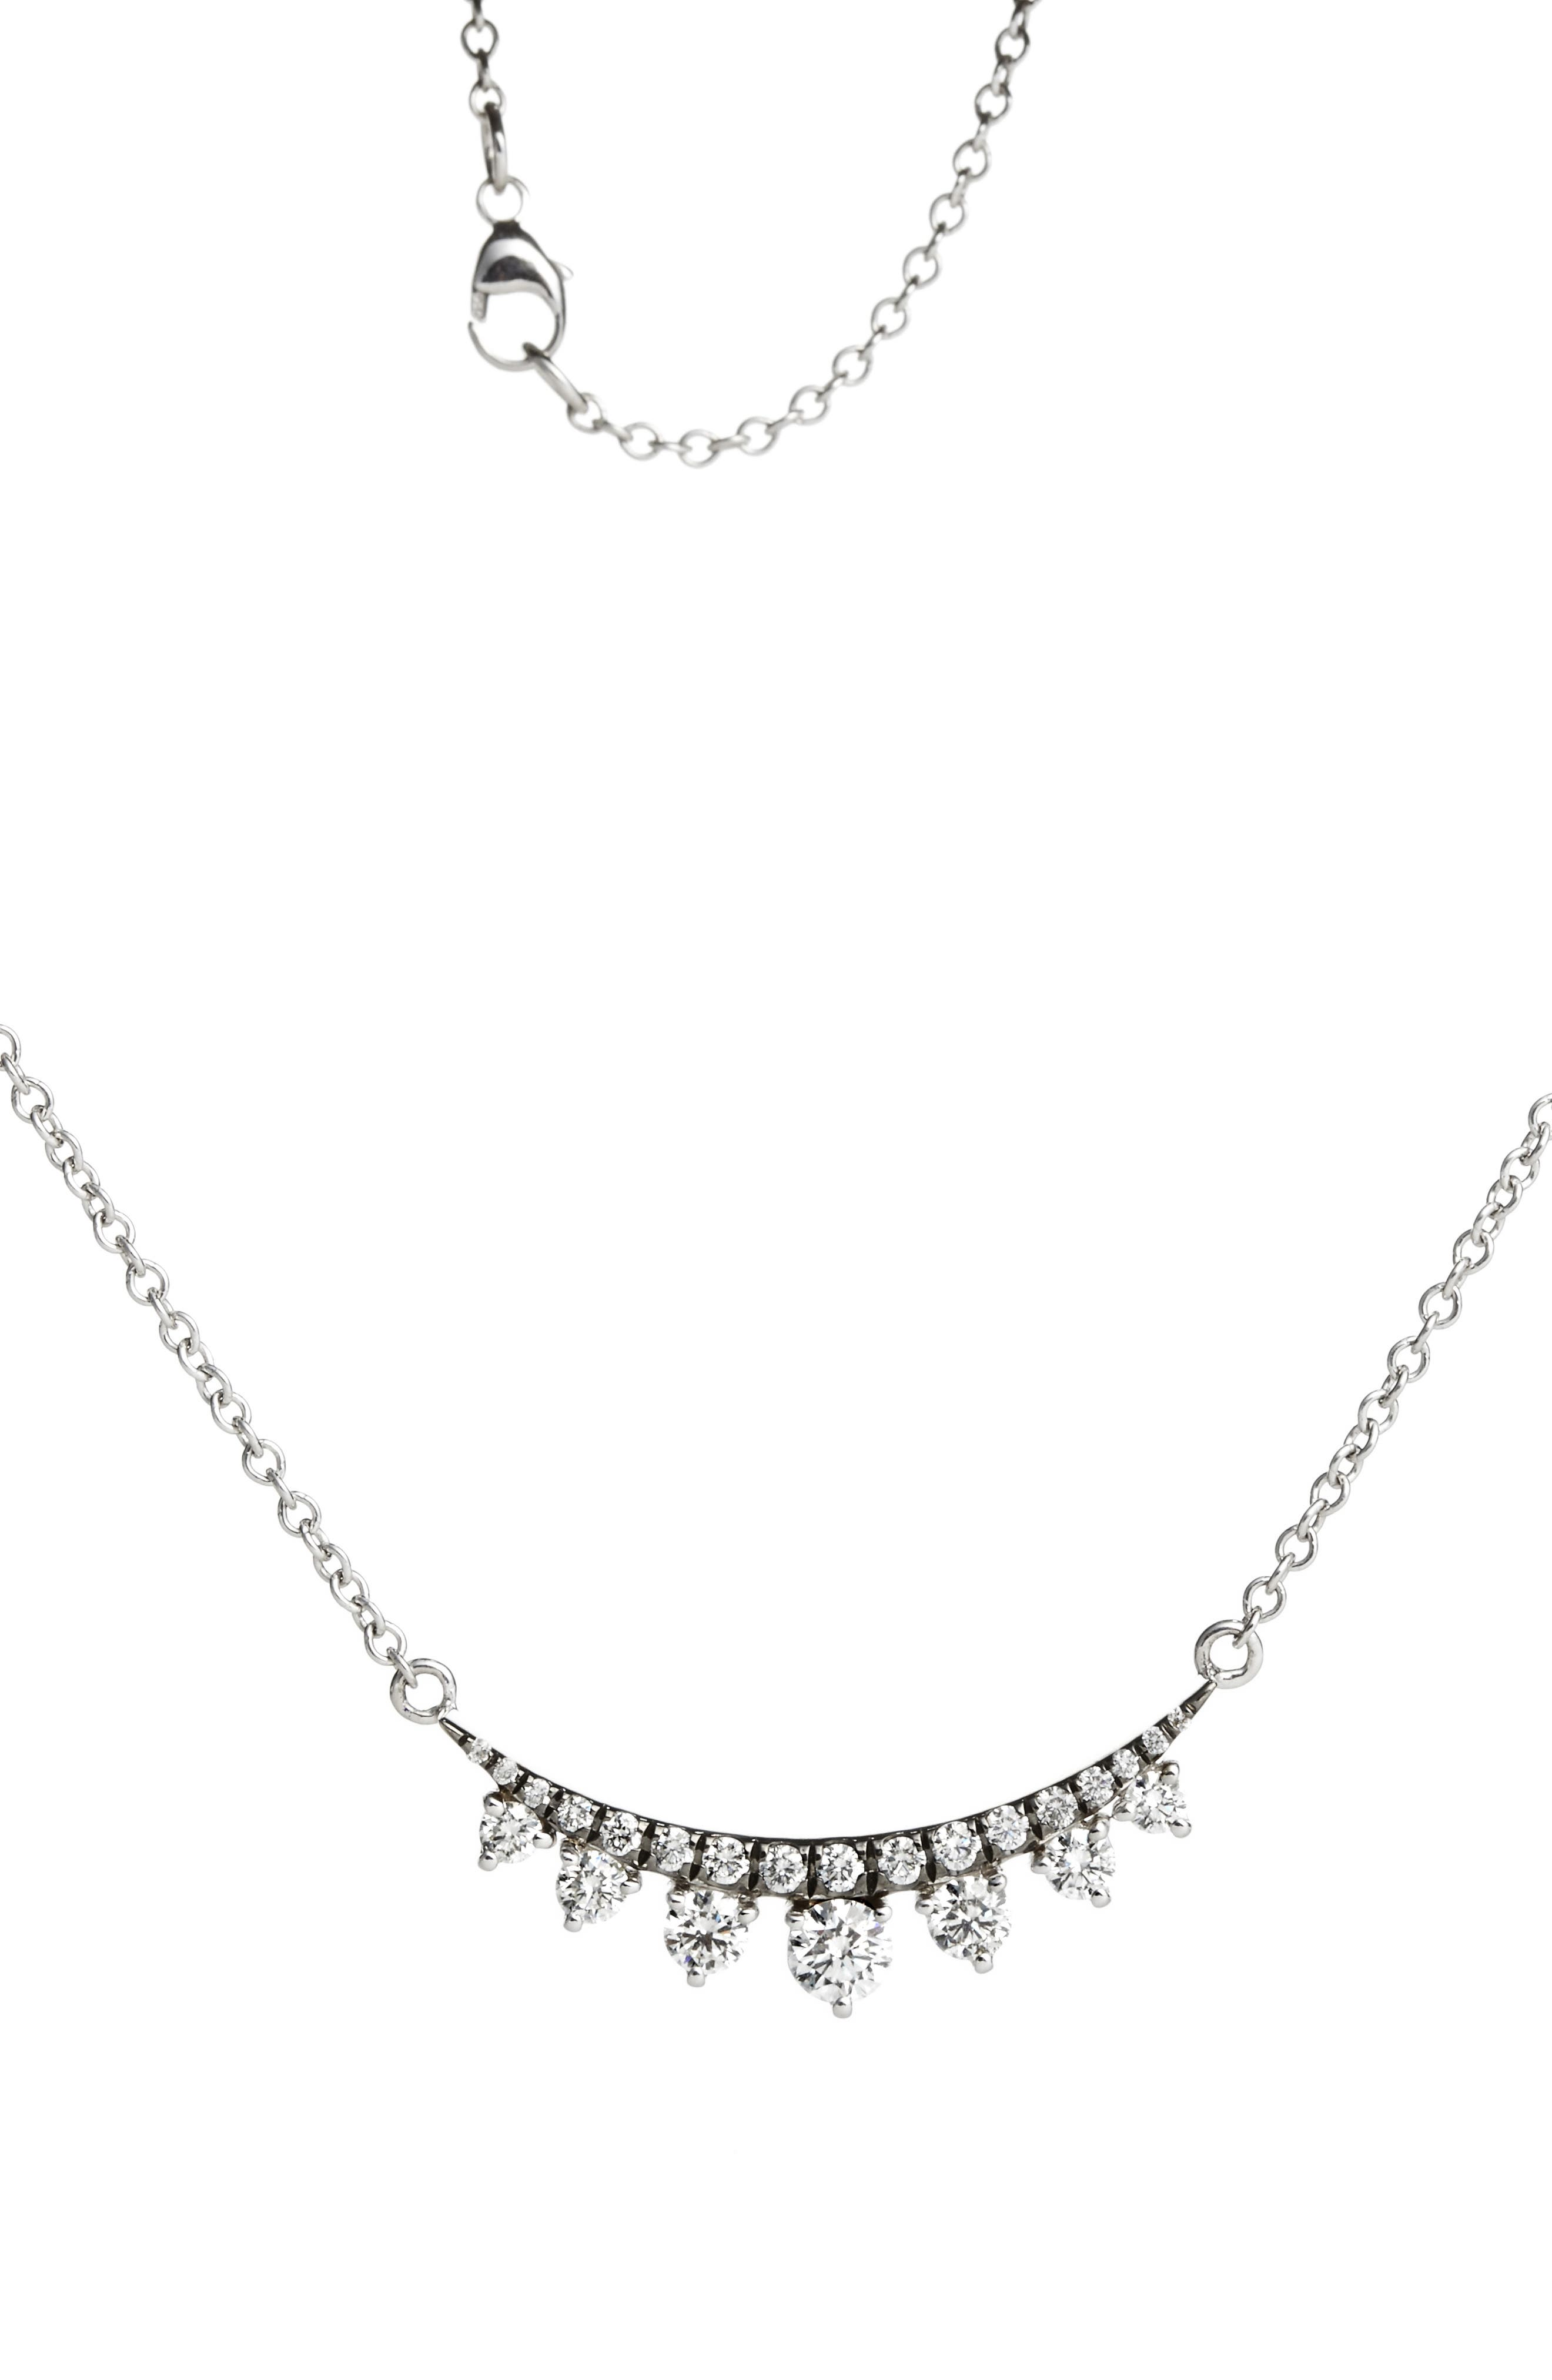 Prive Luxe 18K White Gold & Diamond Necklace,                             Main thumbnail 1, color,                             710